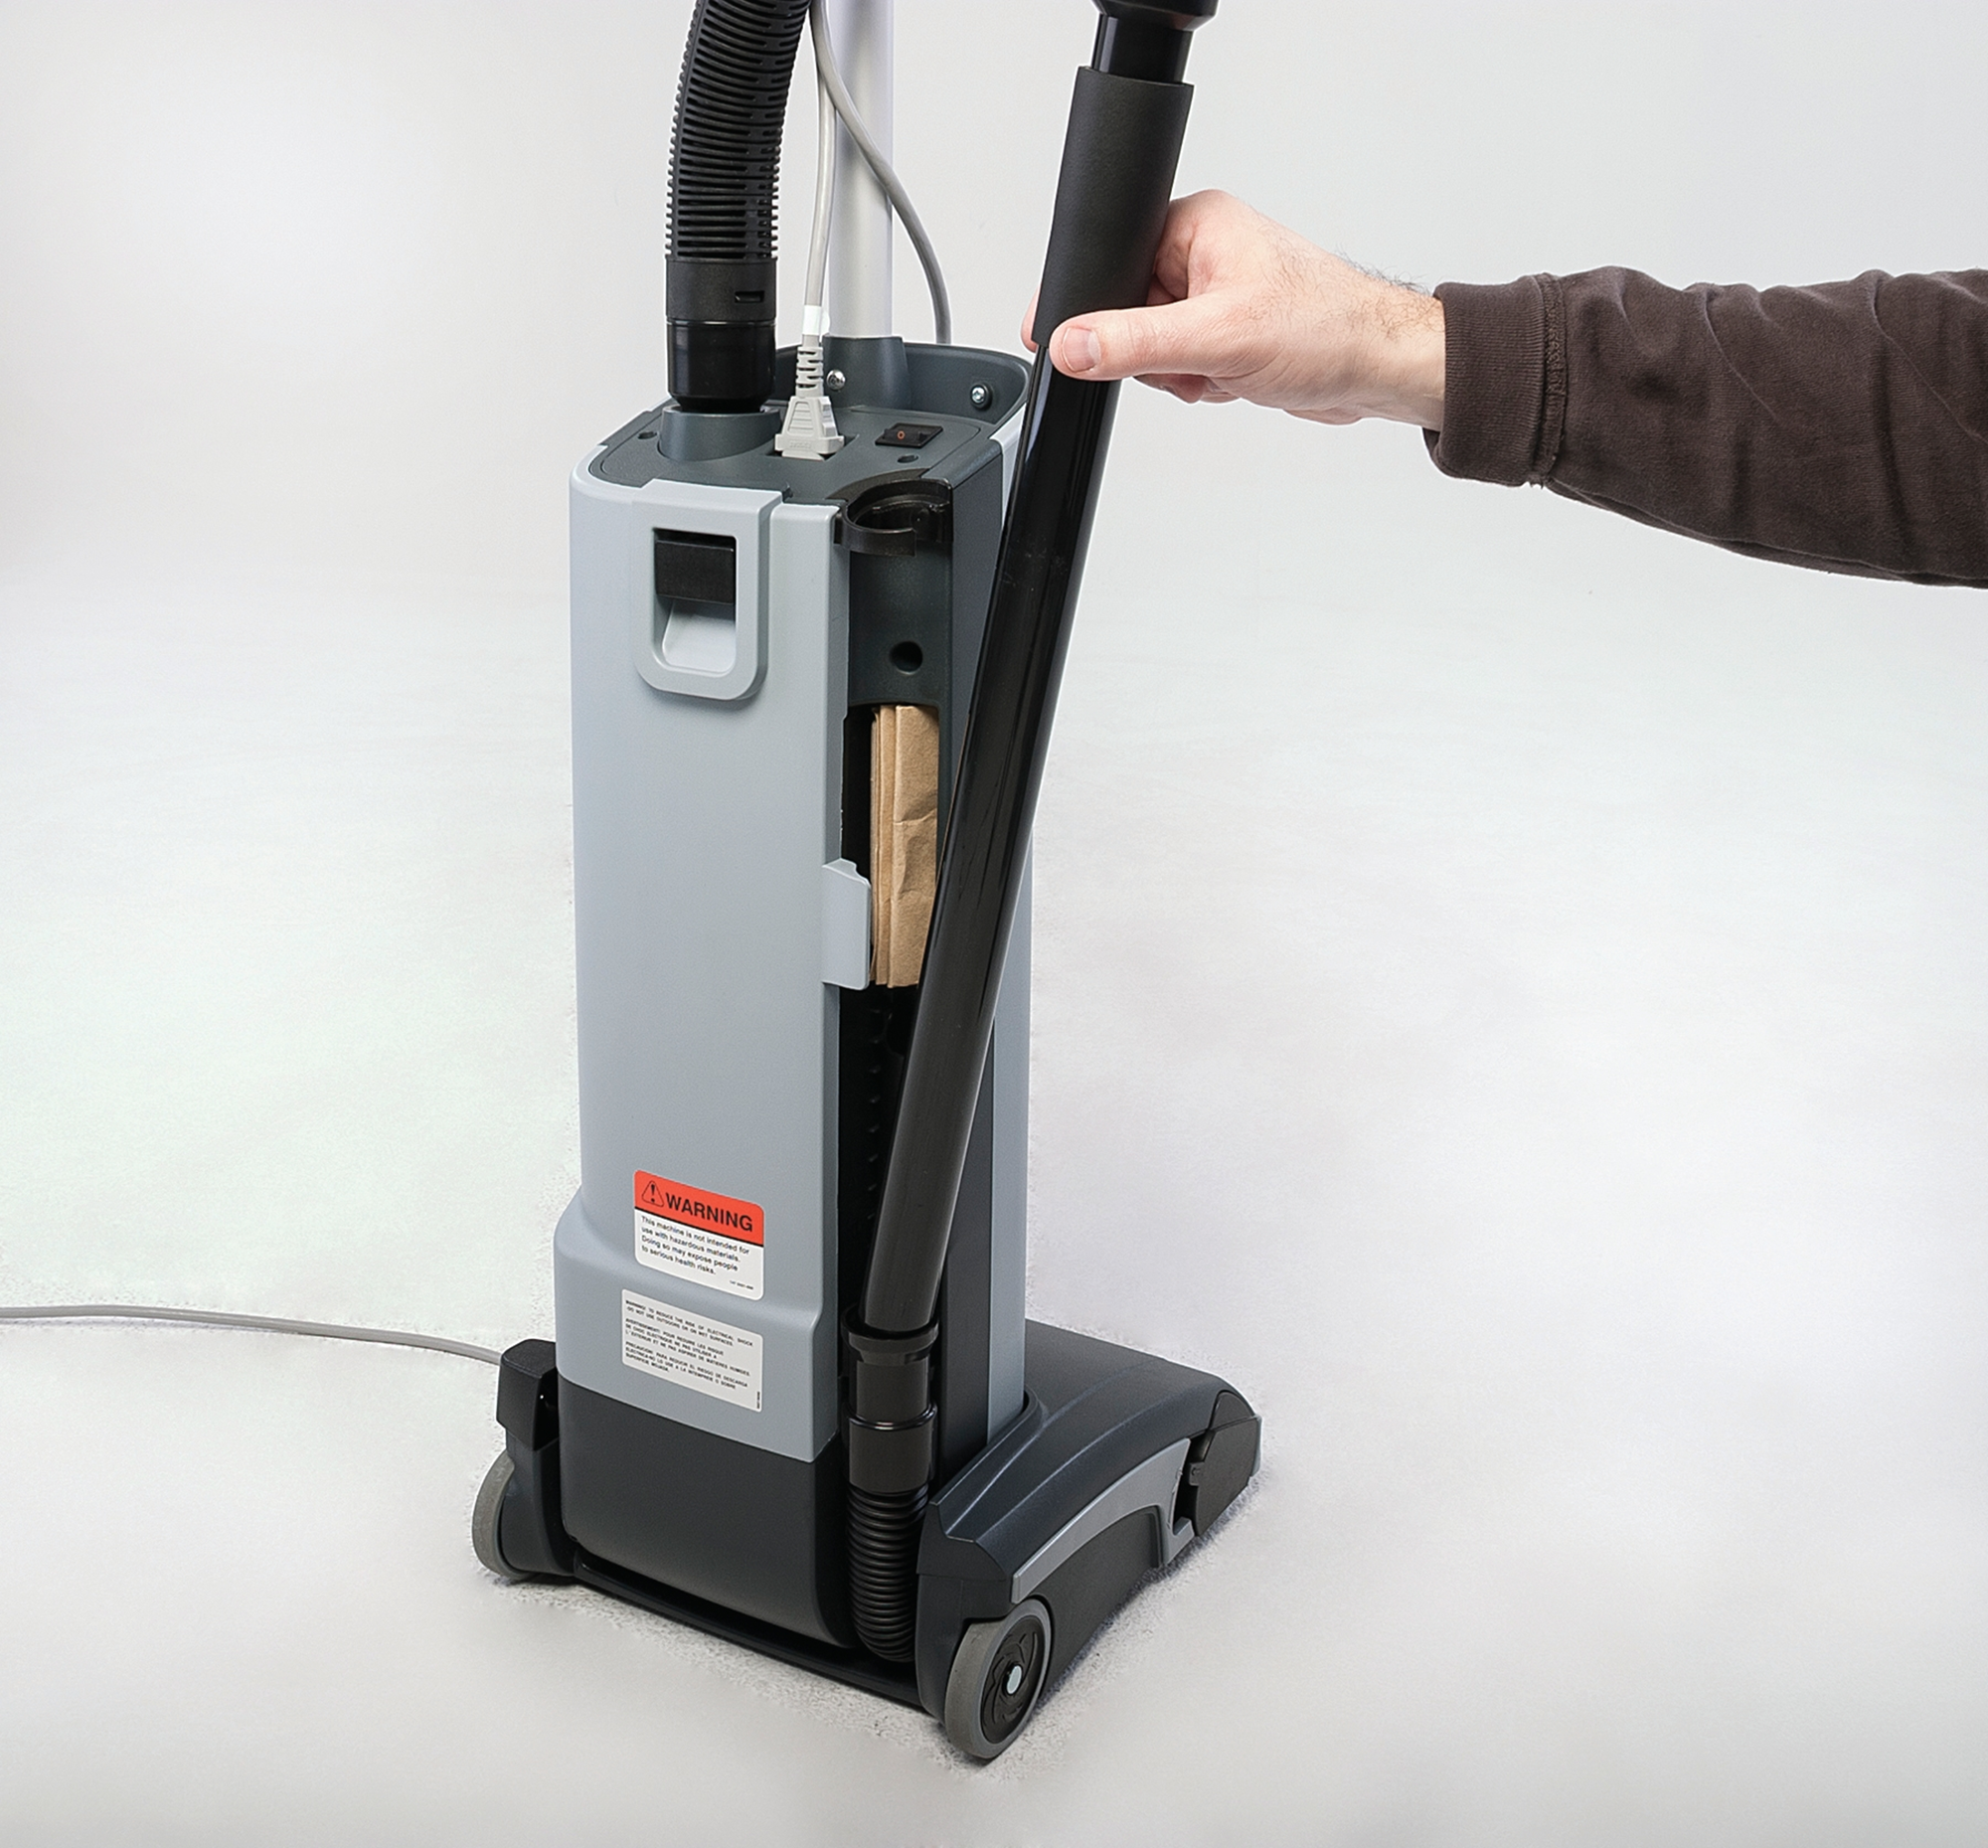 Product, Carpet Cleaning, Commercial Vacuum Cleaners, Upright Vacuum Cleaners, Nilfisk, VU500 12INCH UPRIGHT VAC US